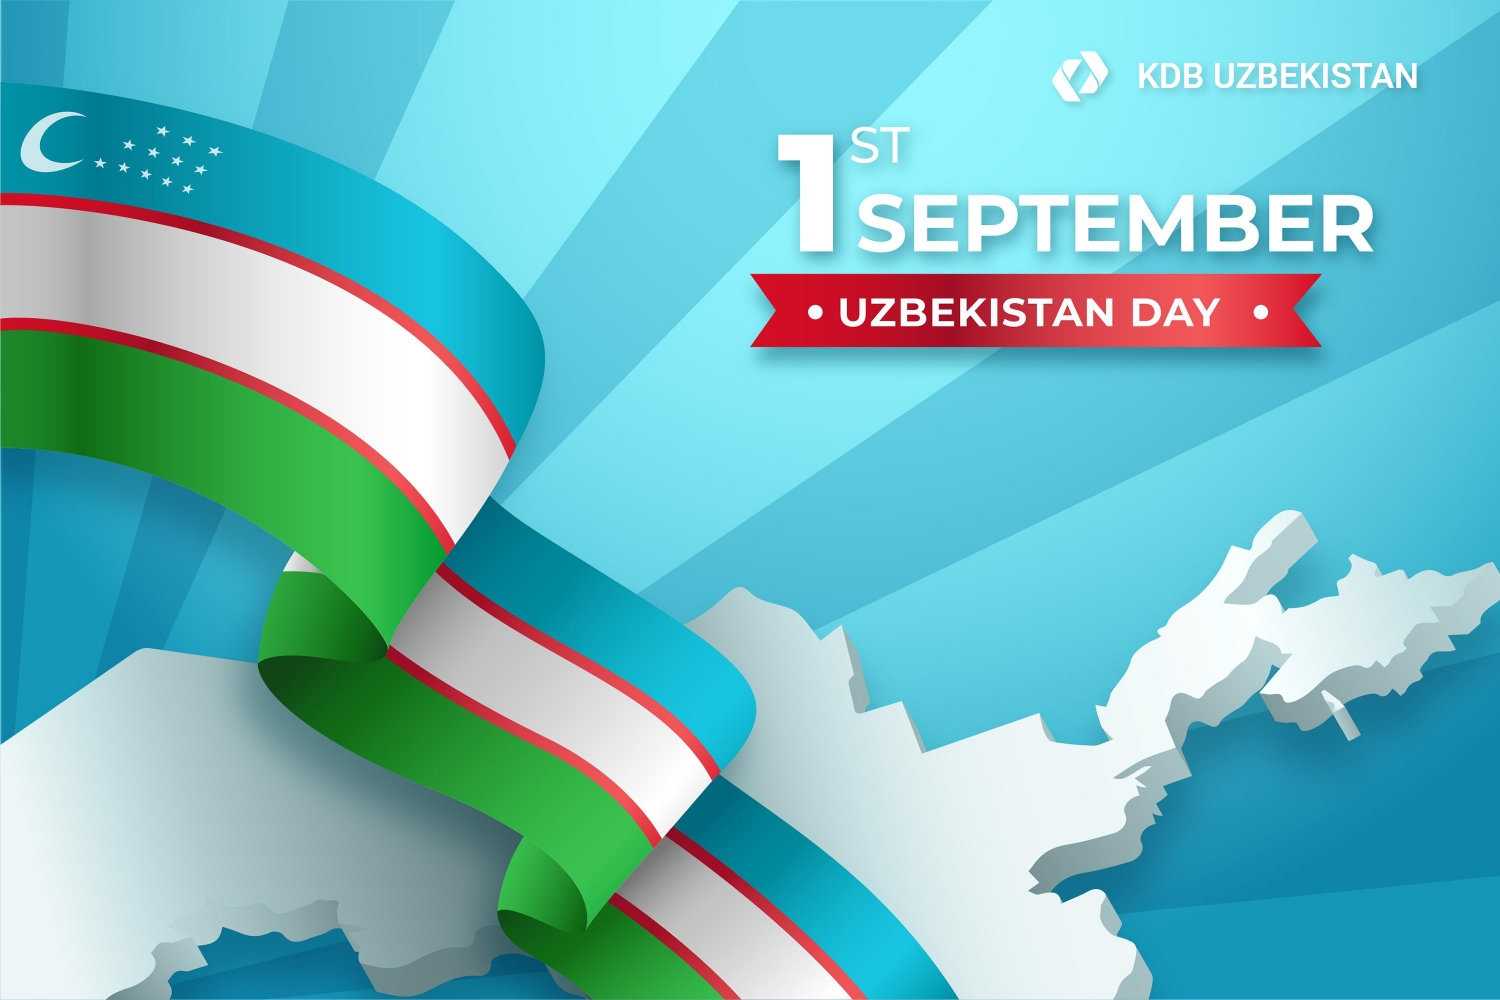 Congratulation with the 29th anniversary of Independence of the country